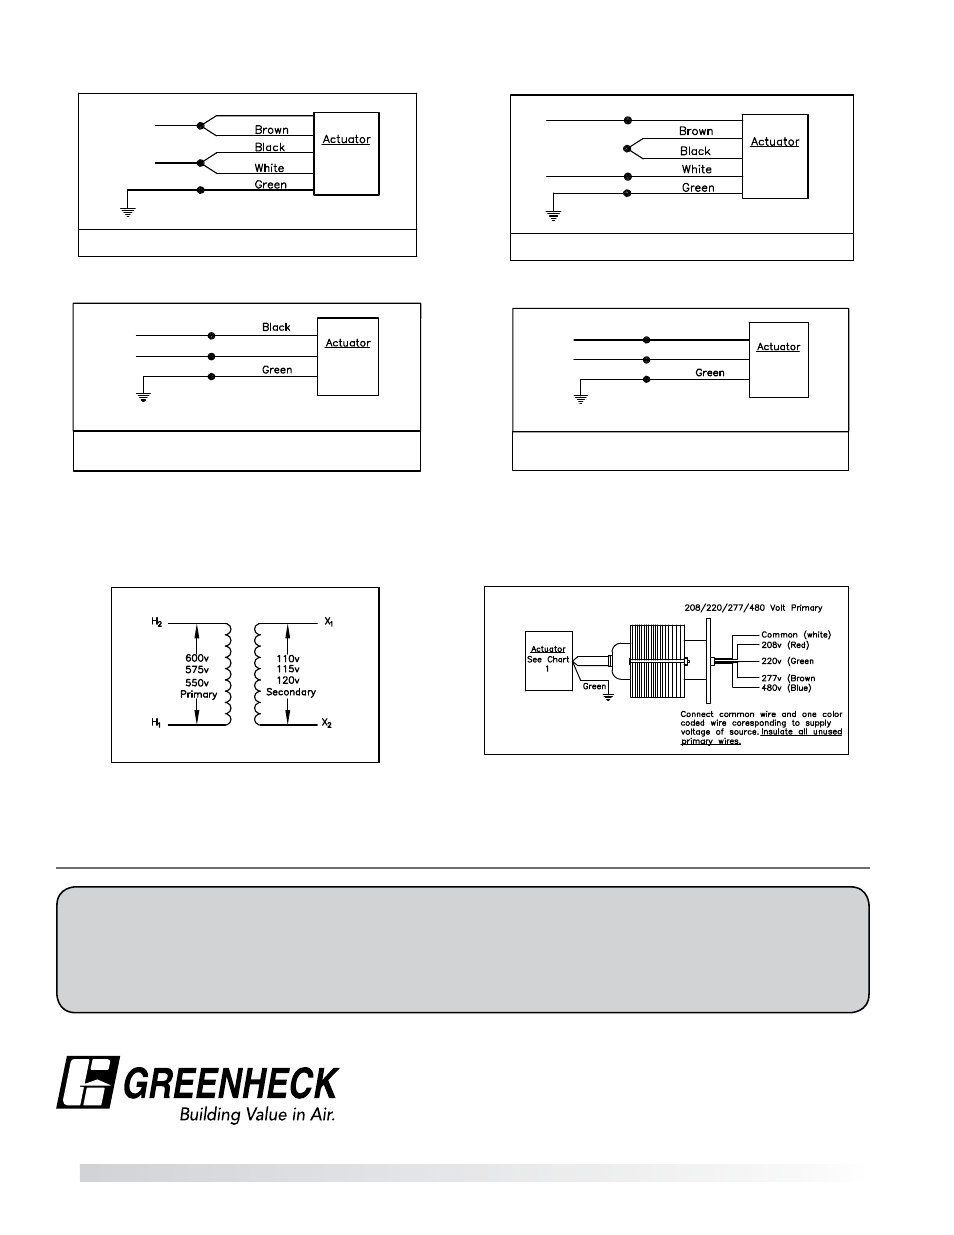 Our Commitment Actuator Wiring Diagrams Transformers Greenheck 480 Volt Transformer Diagram Background Image Optional For